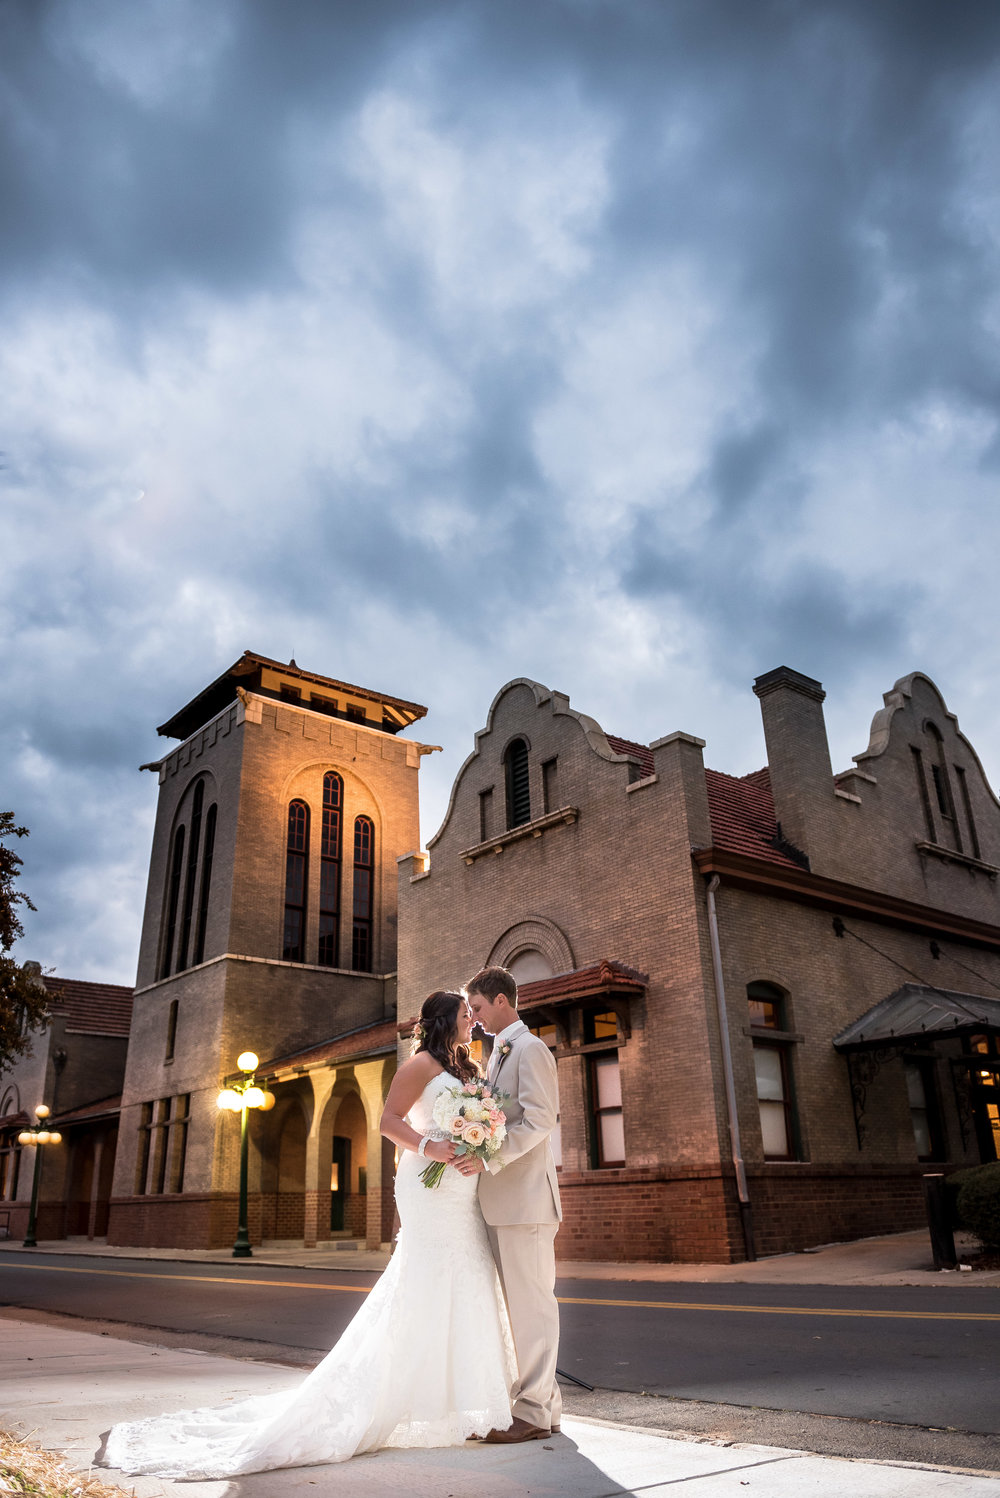 The Salisbury Train Depot | Salisbury NC | Best Wedding Venues in Piedmont Triad NC